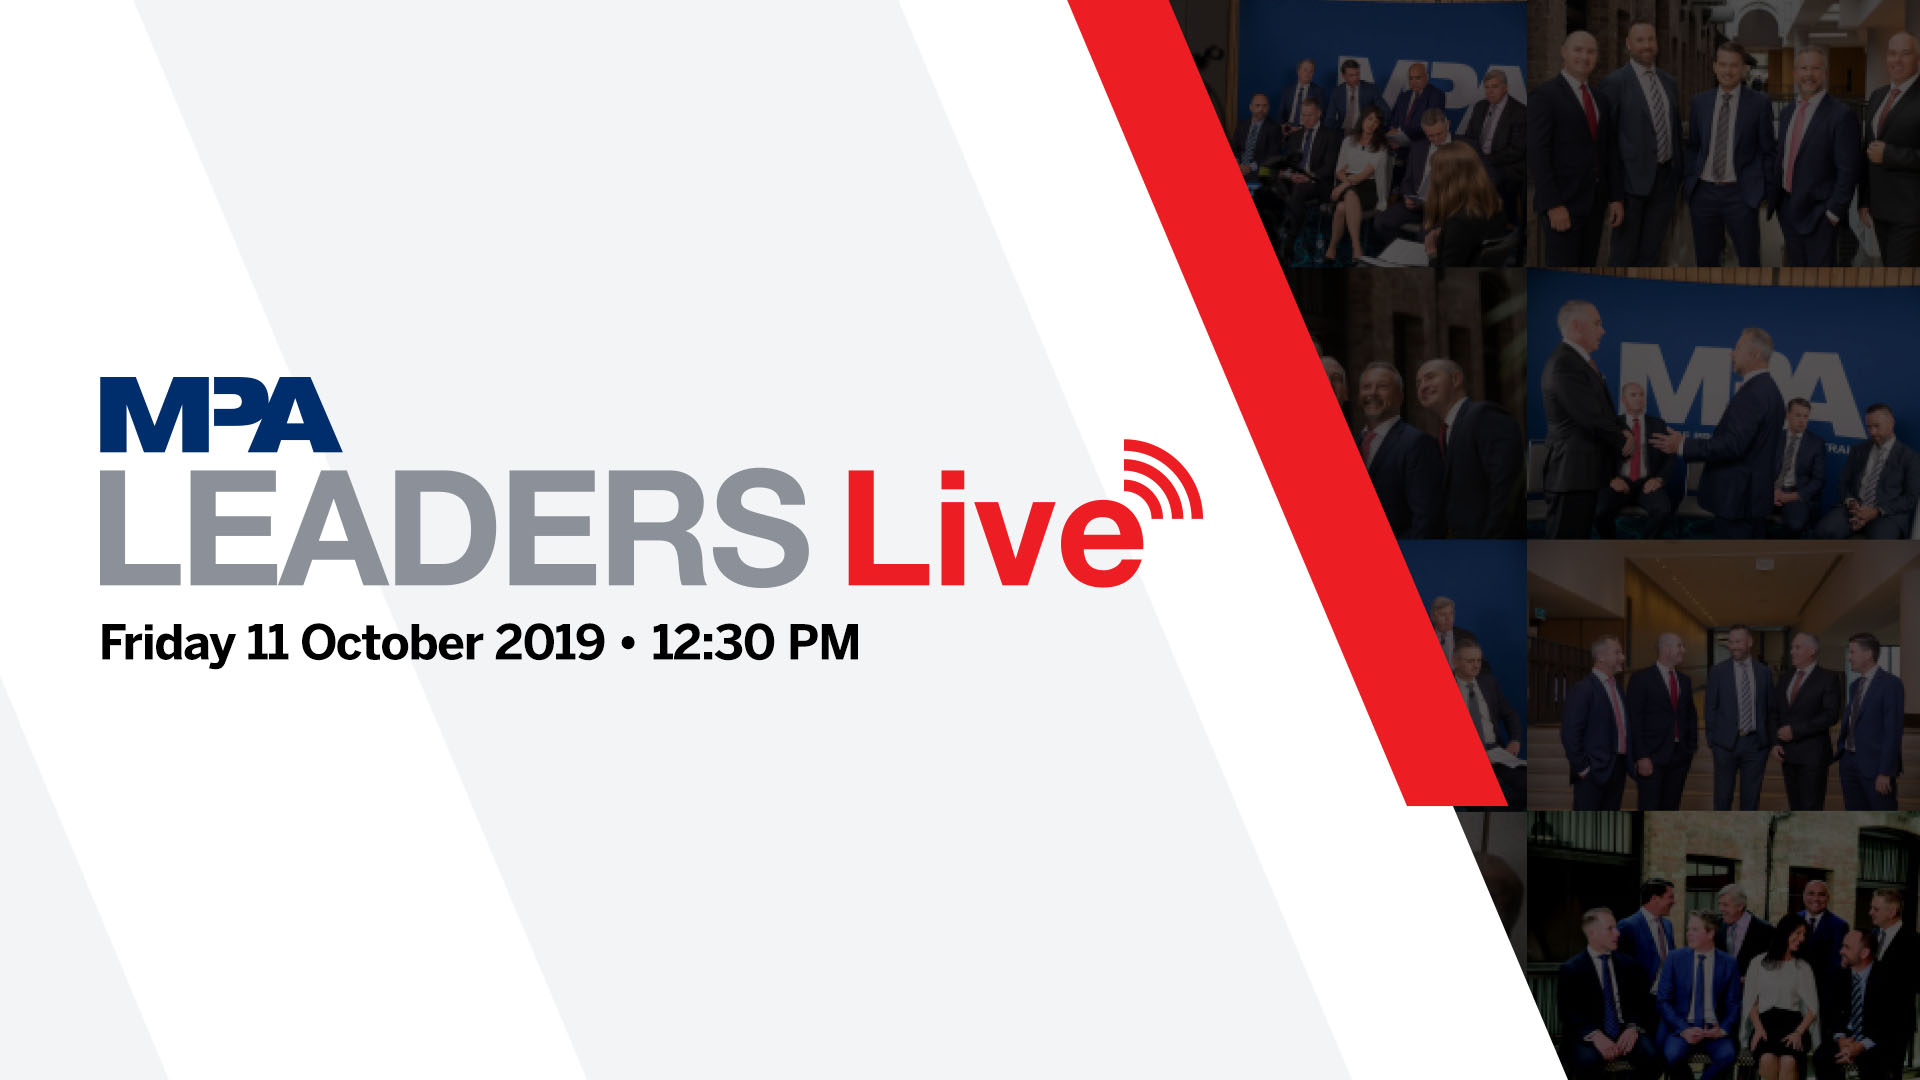 MPA Leaders Live: Major Banks Panel 2019